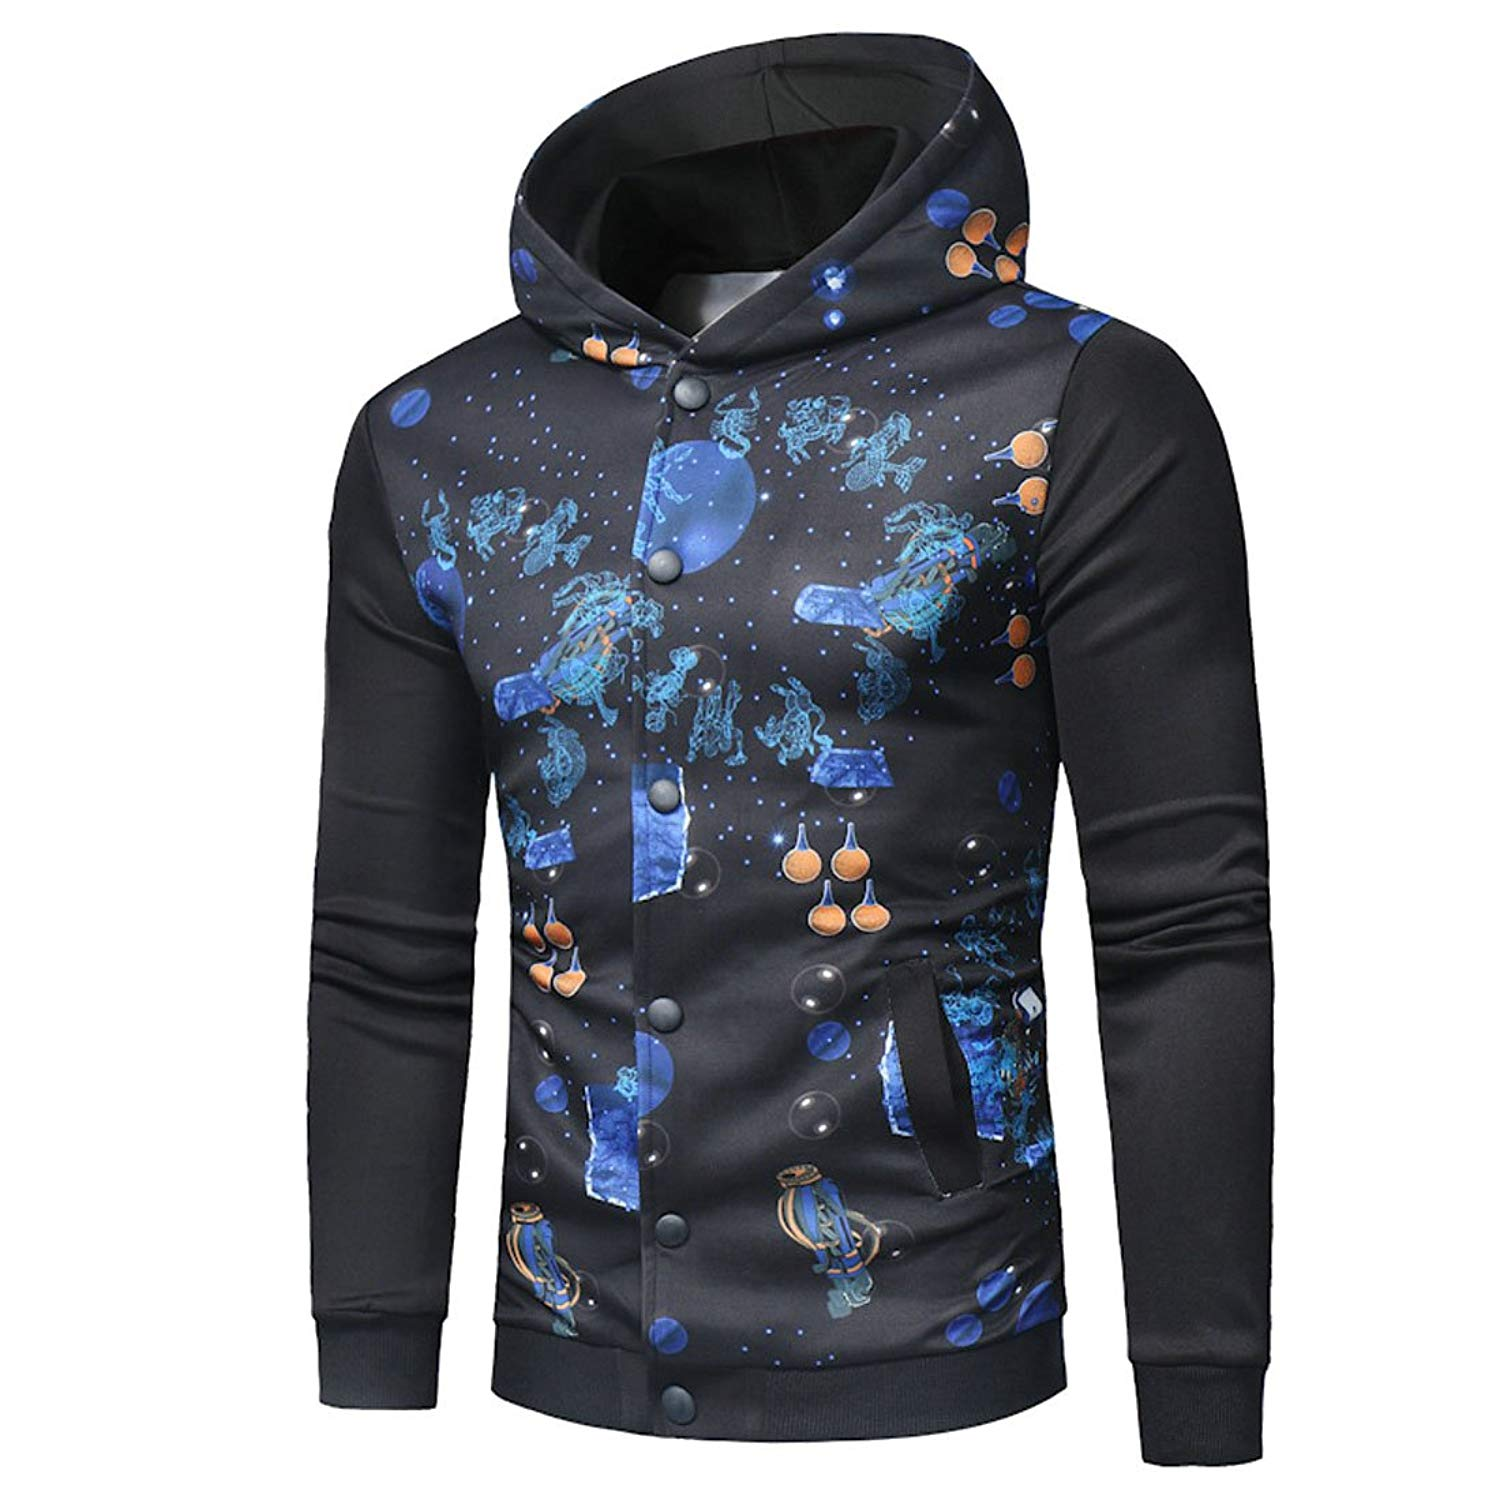 e77d65d21c5d Get Quotations · UUYUK-Men Autumn Print Button Front Hoodie Sweatshirt Coat  Outwear